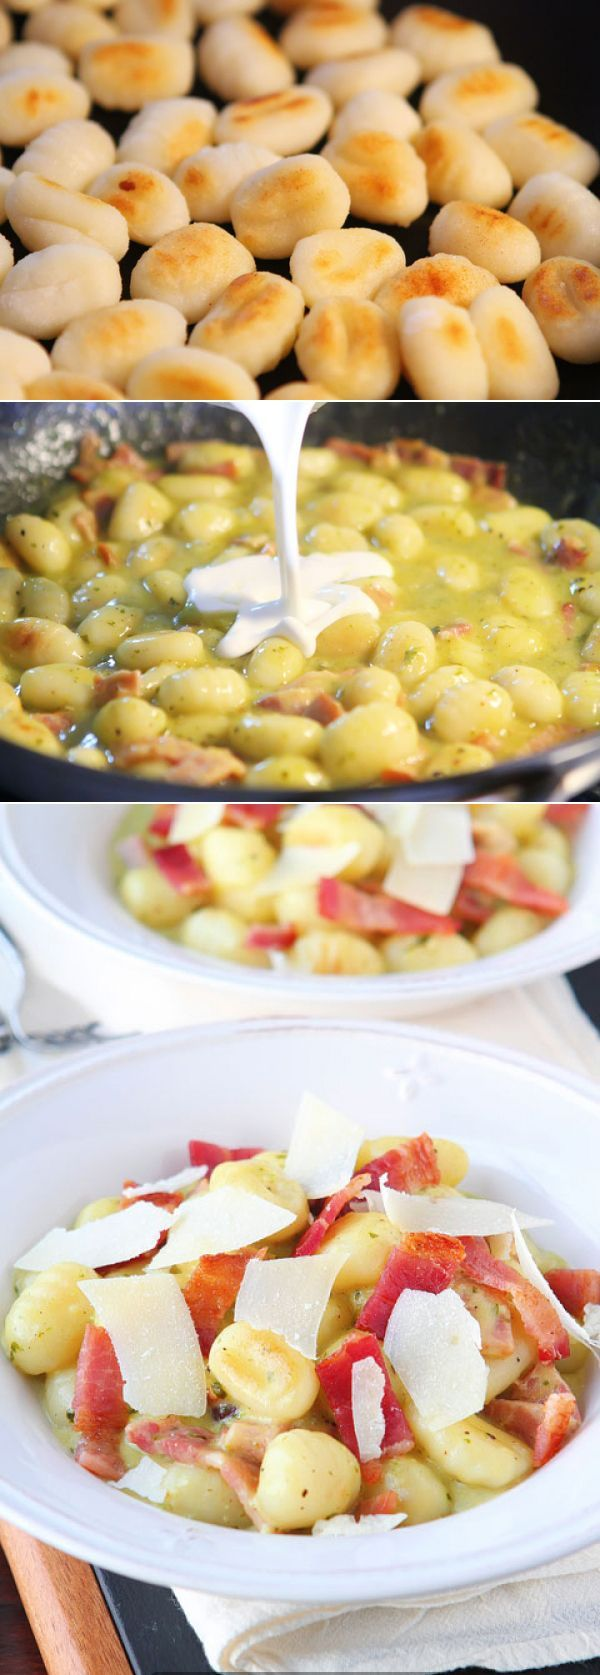 Creamy Pesto Gnocchi With Bacon Parmesan ~ Instead of making usual pasta for dinner try to implement this recipe with puffy potato gnocchi!